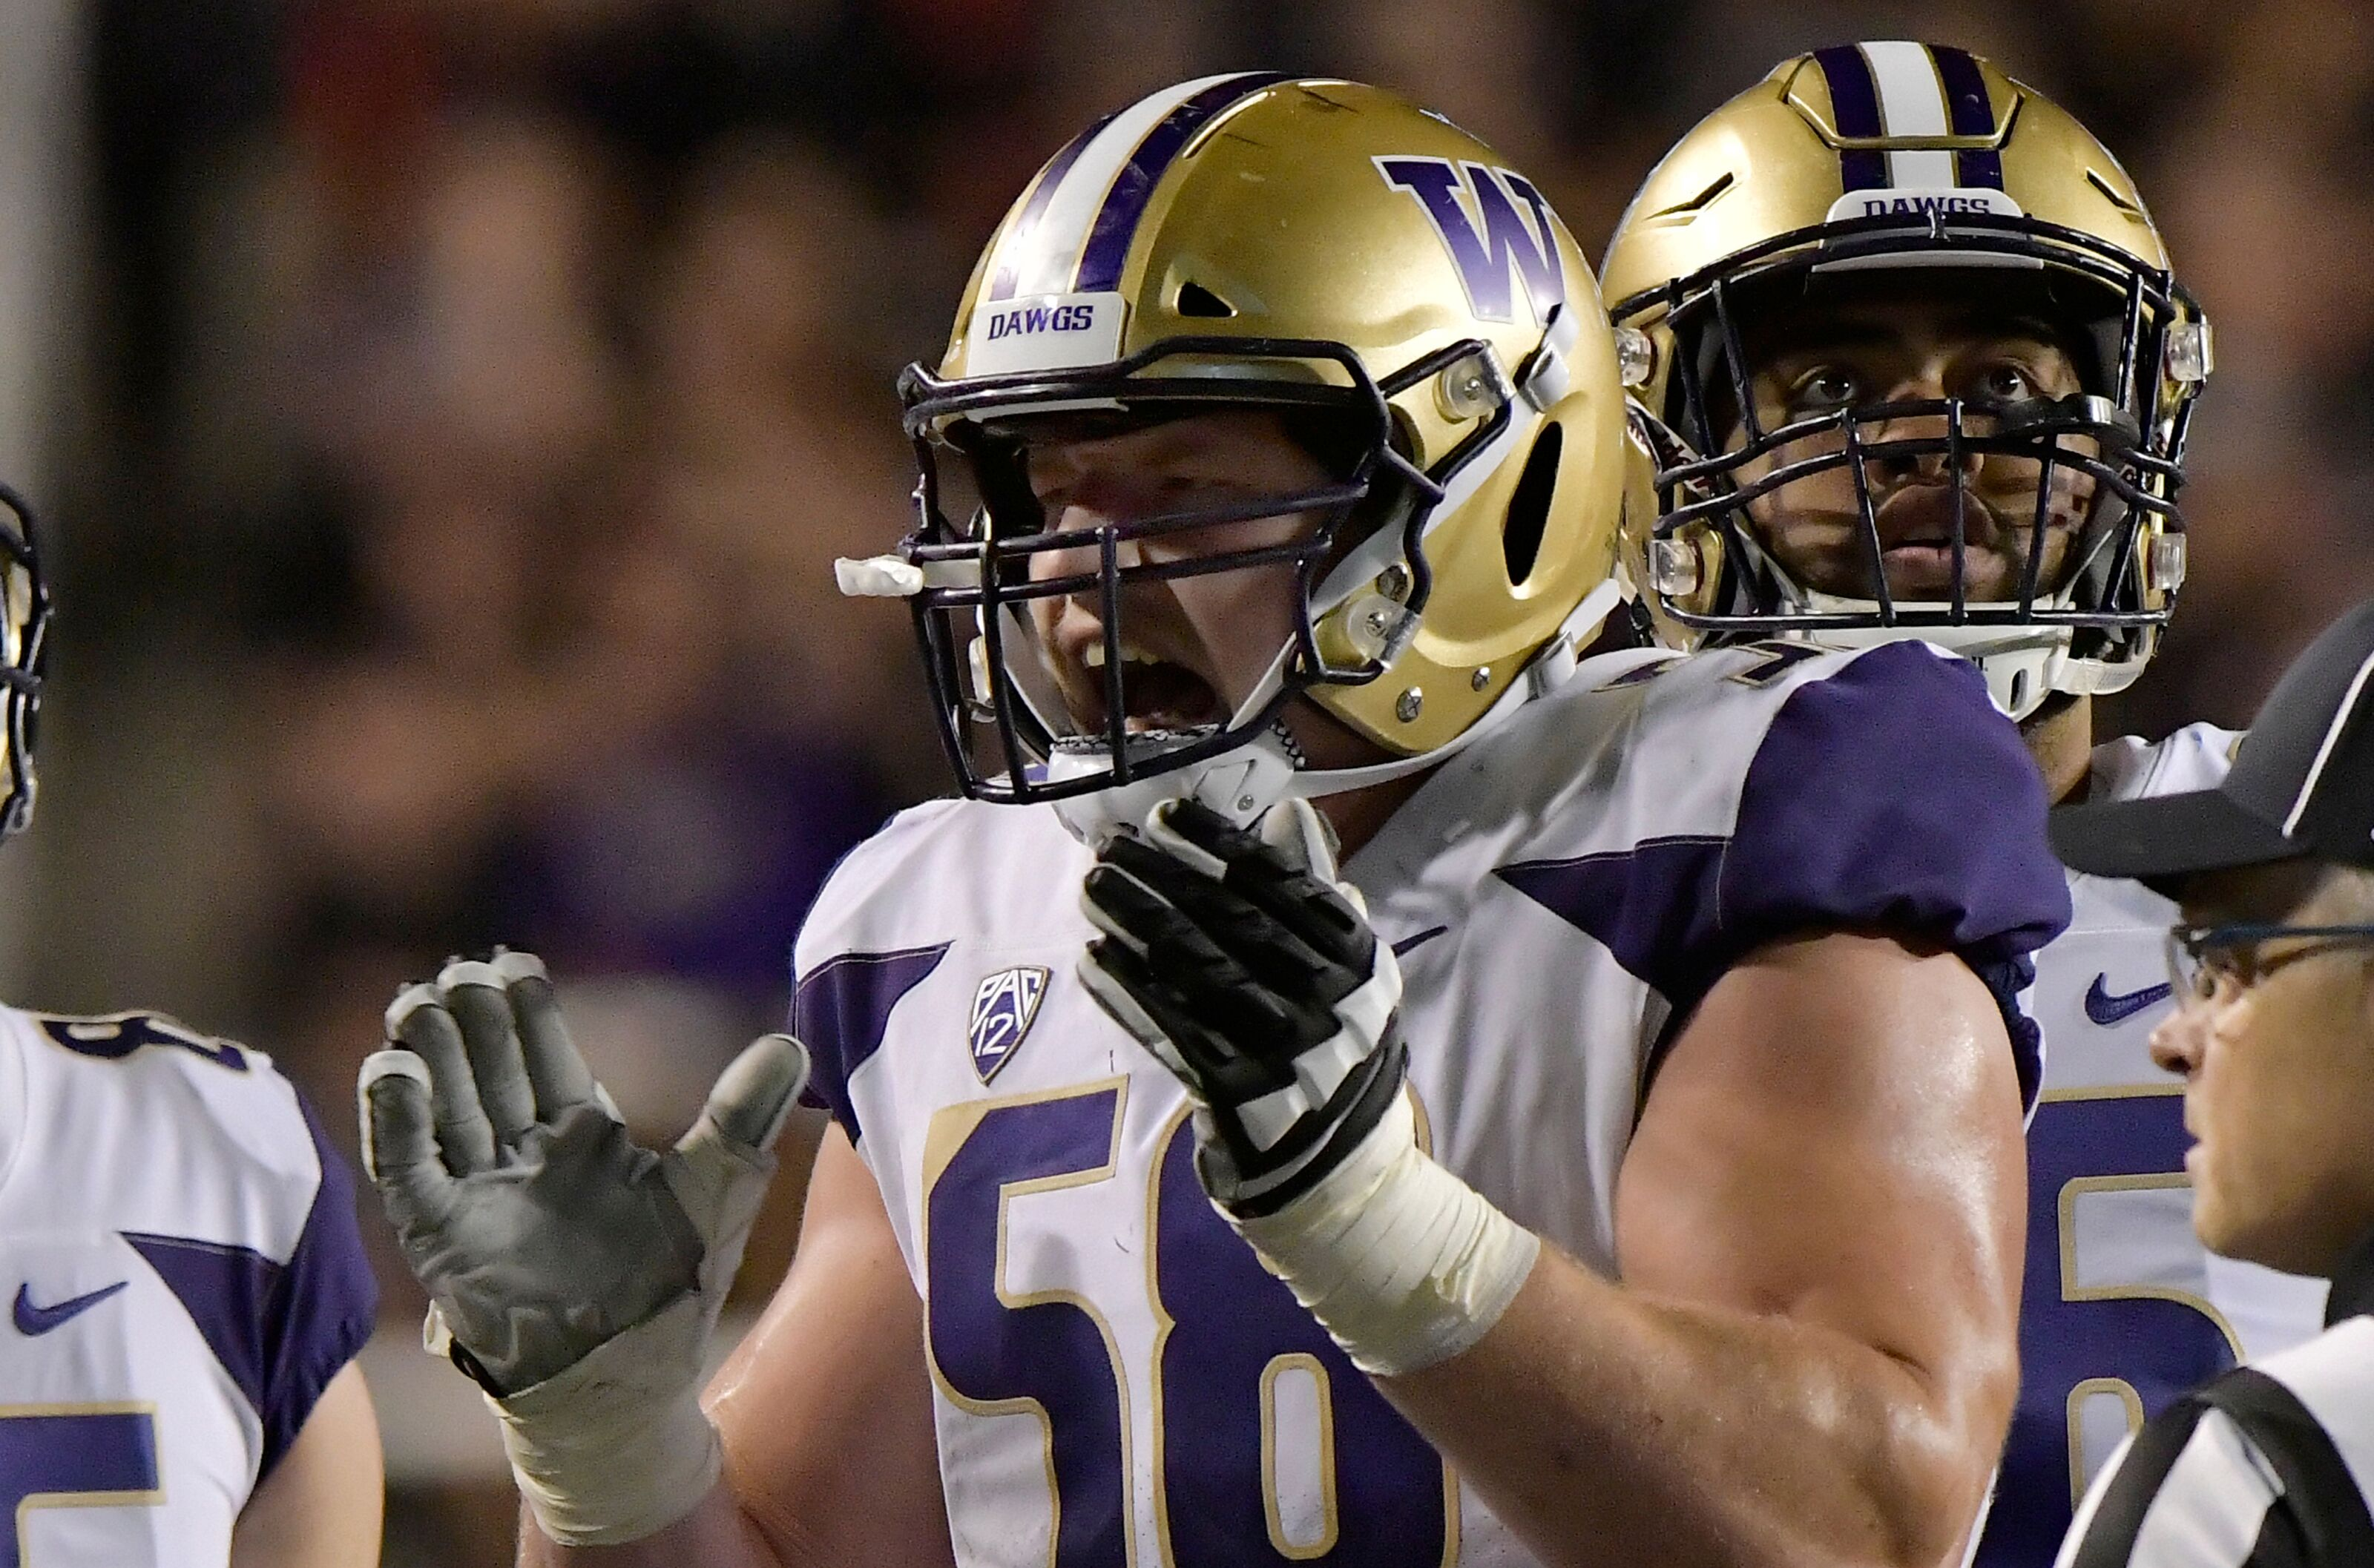 2019 NFL Draft: Saints could go offensive line with pick 62